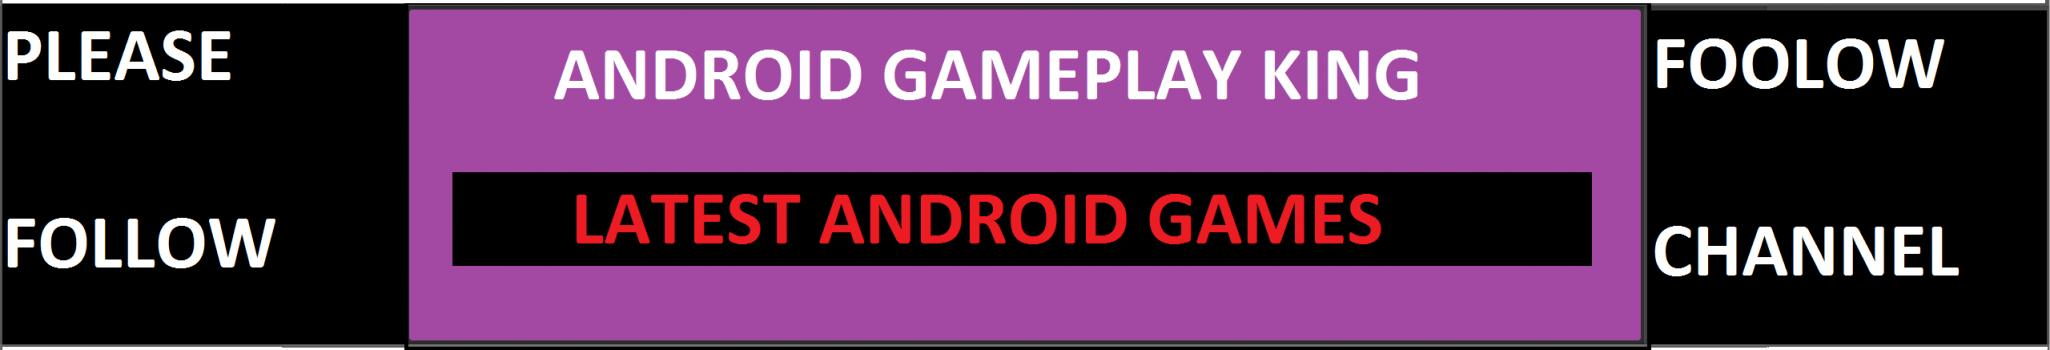 ANDROID GAMEPLAY KING